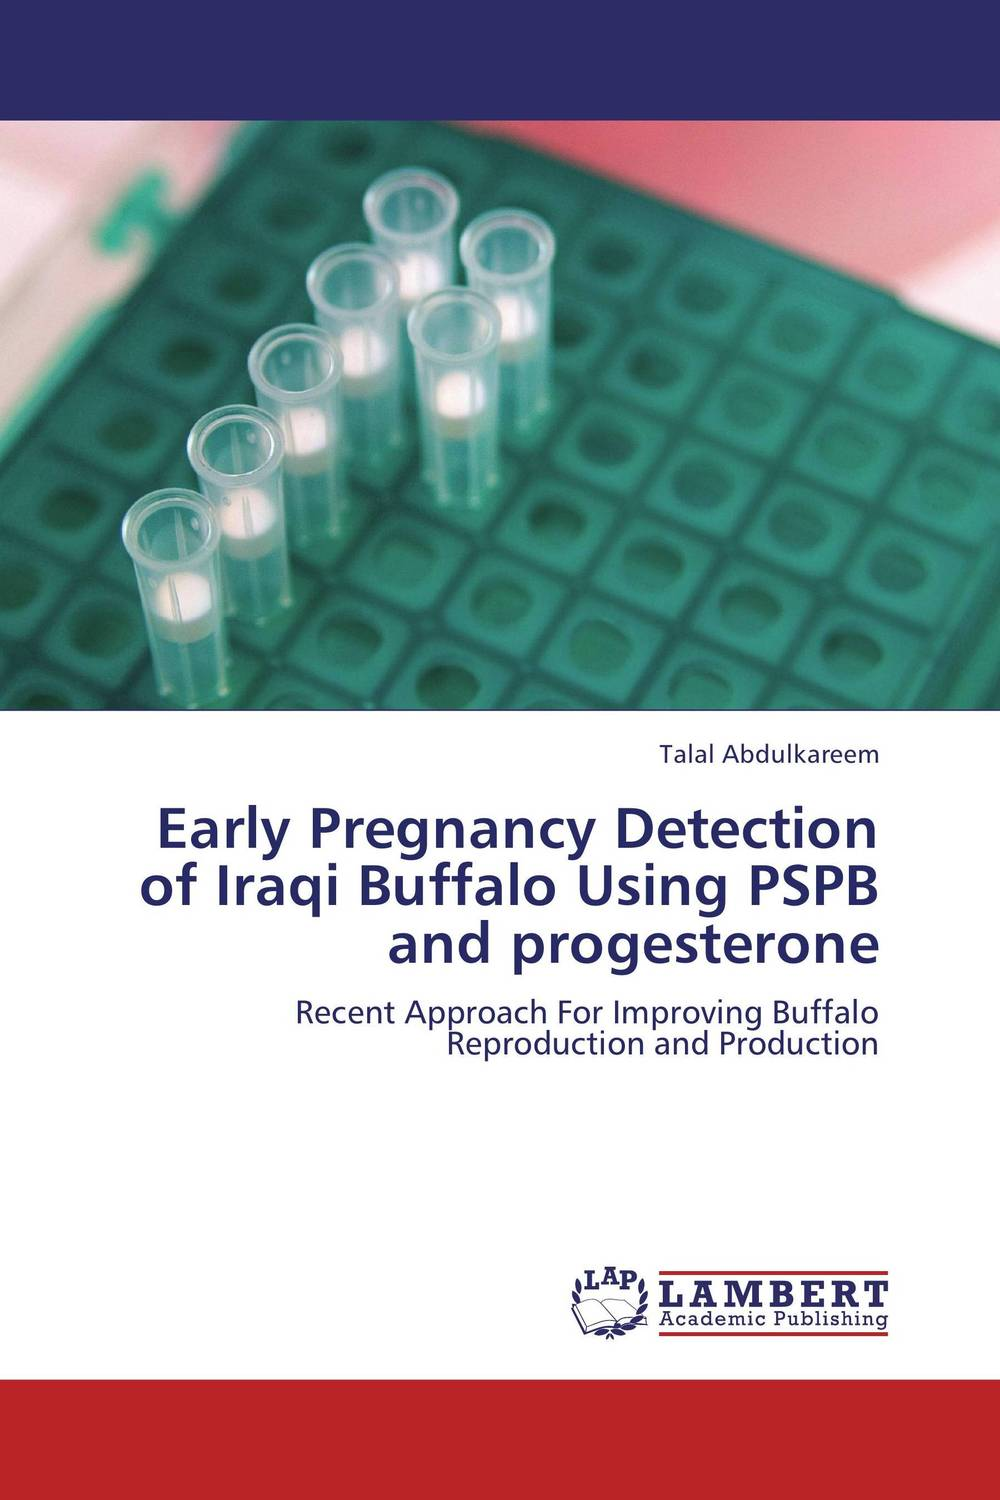 Early Pregnancy Detection of Iraqi Buffalo Using PSPB and progesterone 9 colors american girl doll dress 18 inch doll clothes and accessories dresses